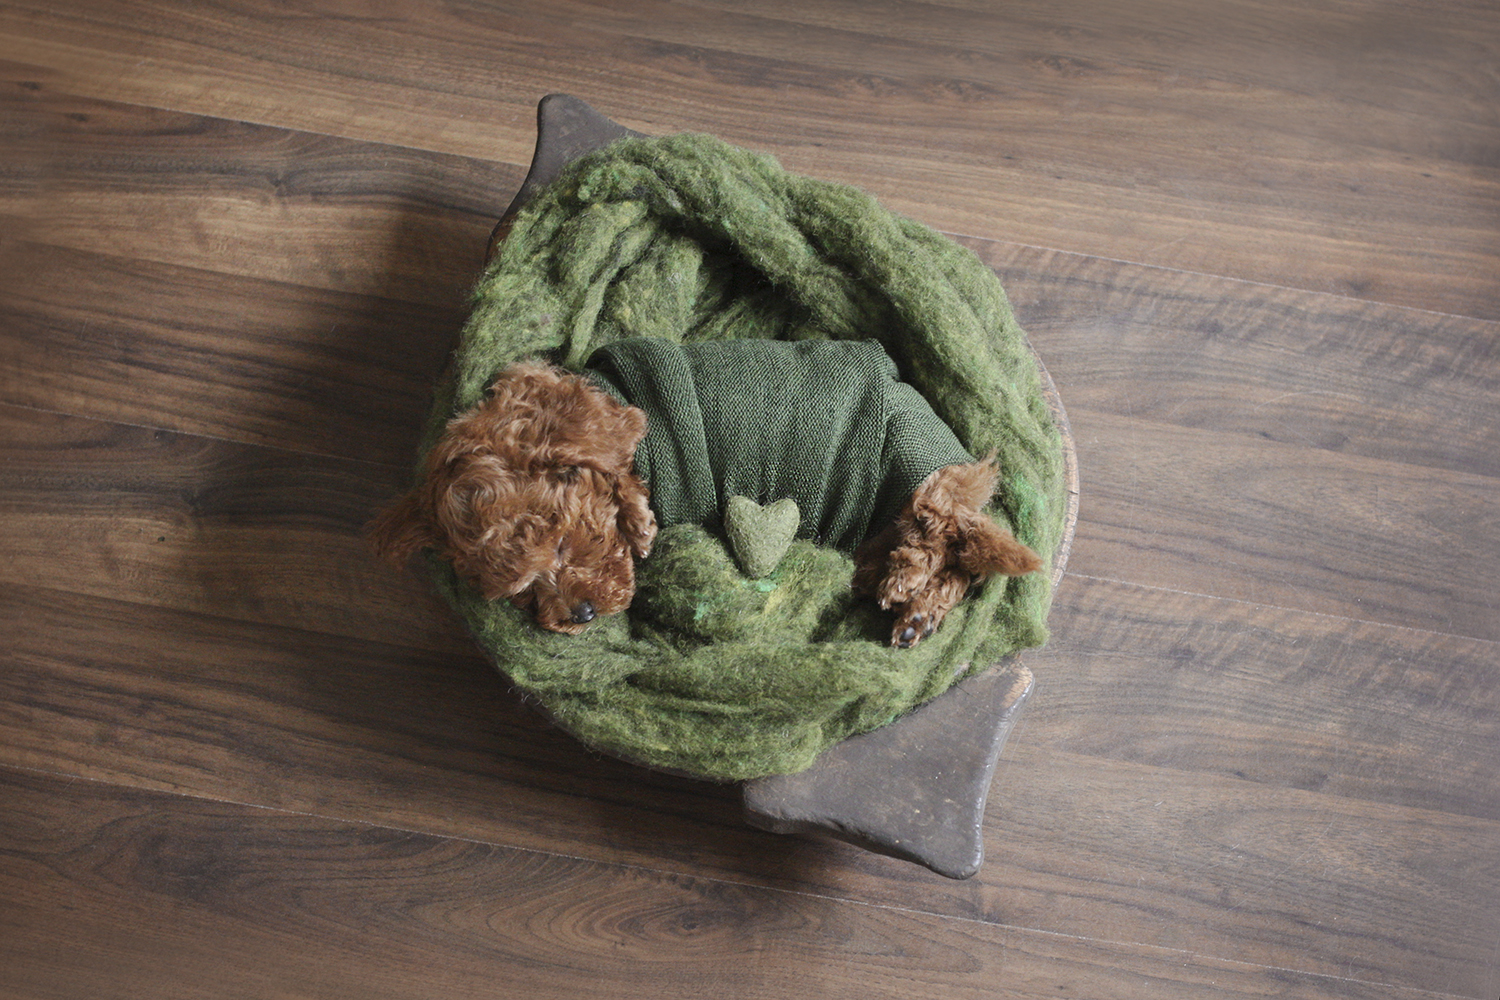 Newborn puppy sleeping in wooden bowl on wooden floor with green felt and wrap and felt heart